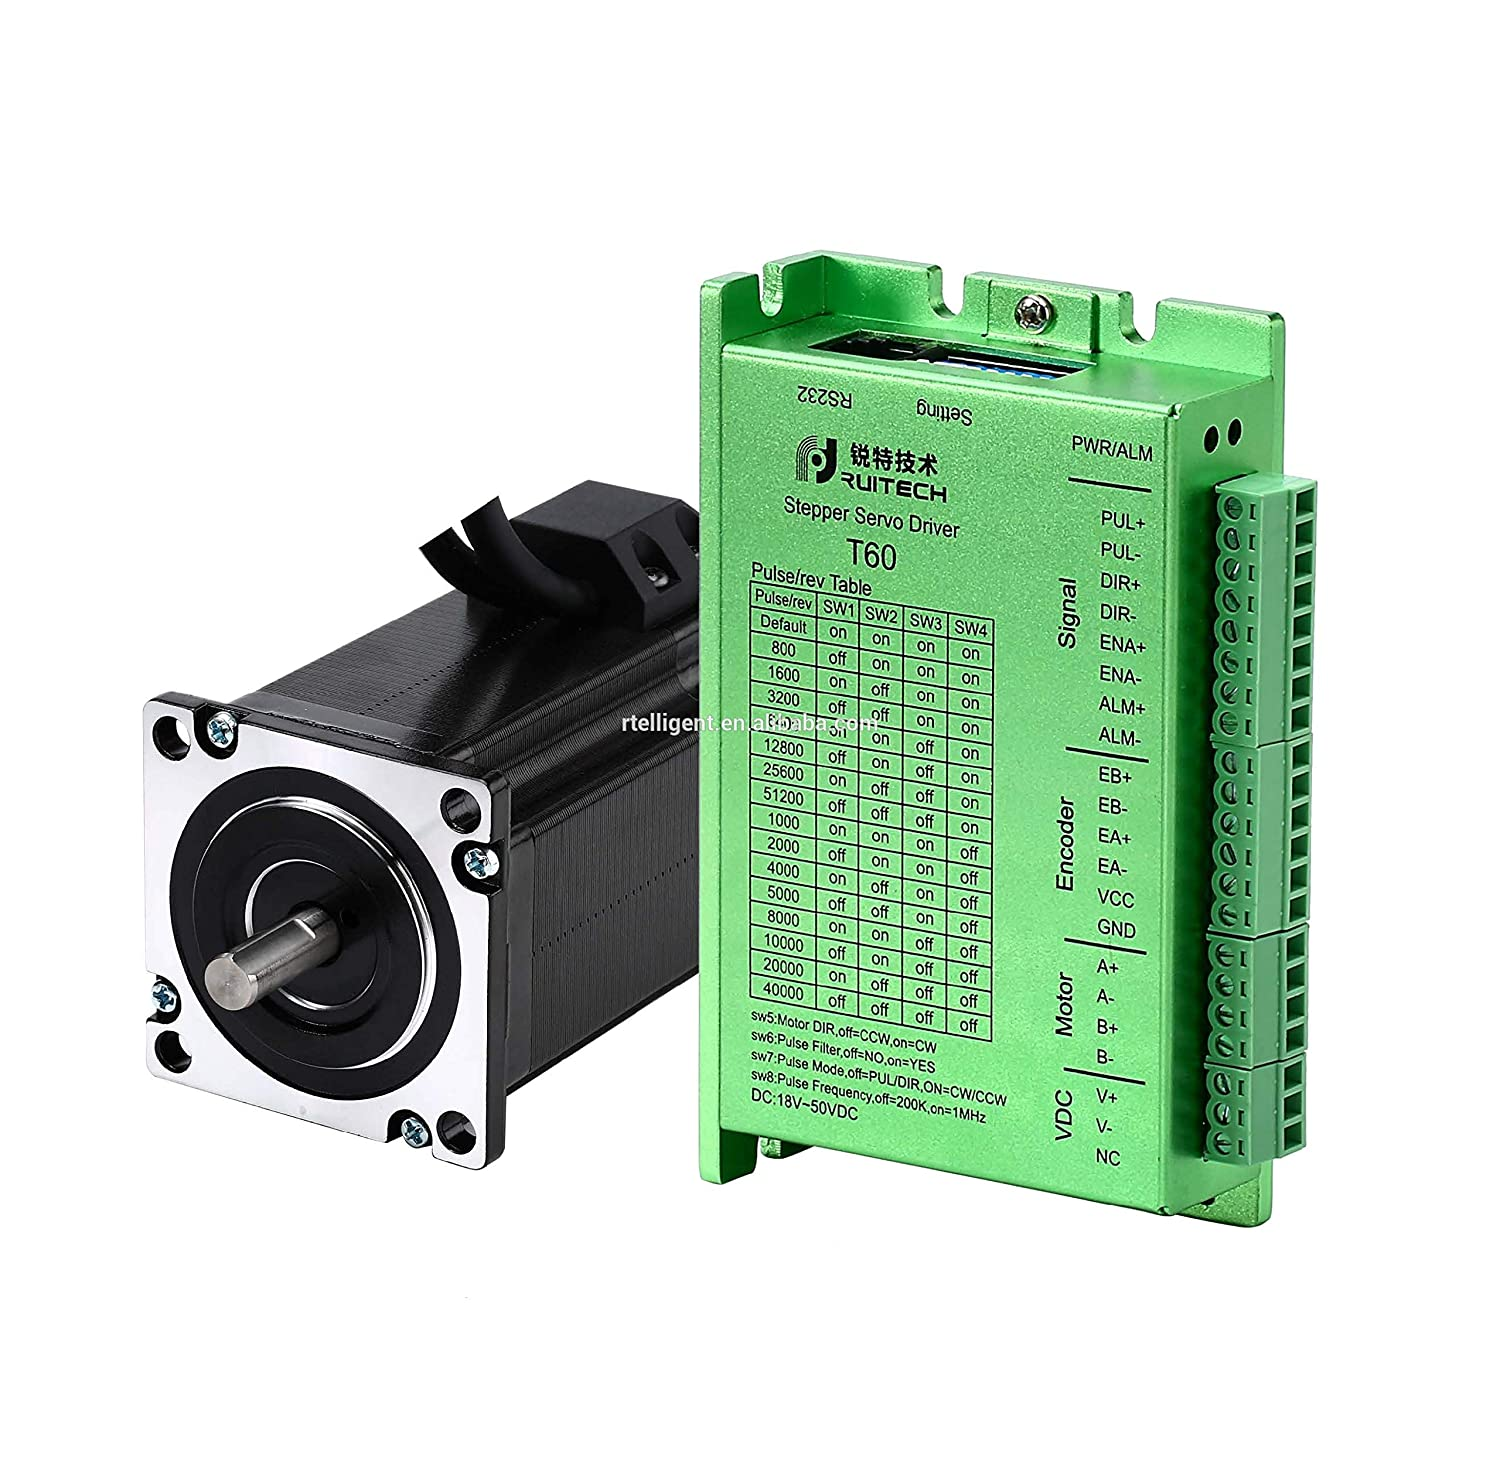 97mm with Encoder 283.4oz.in RTELLIGENT Nema 23 Stepper Closed Loop Servo Motor and Driver Kit 2 Phase 2.0NM 57 4.0A 57